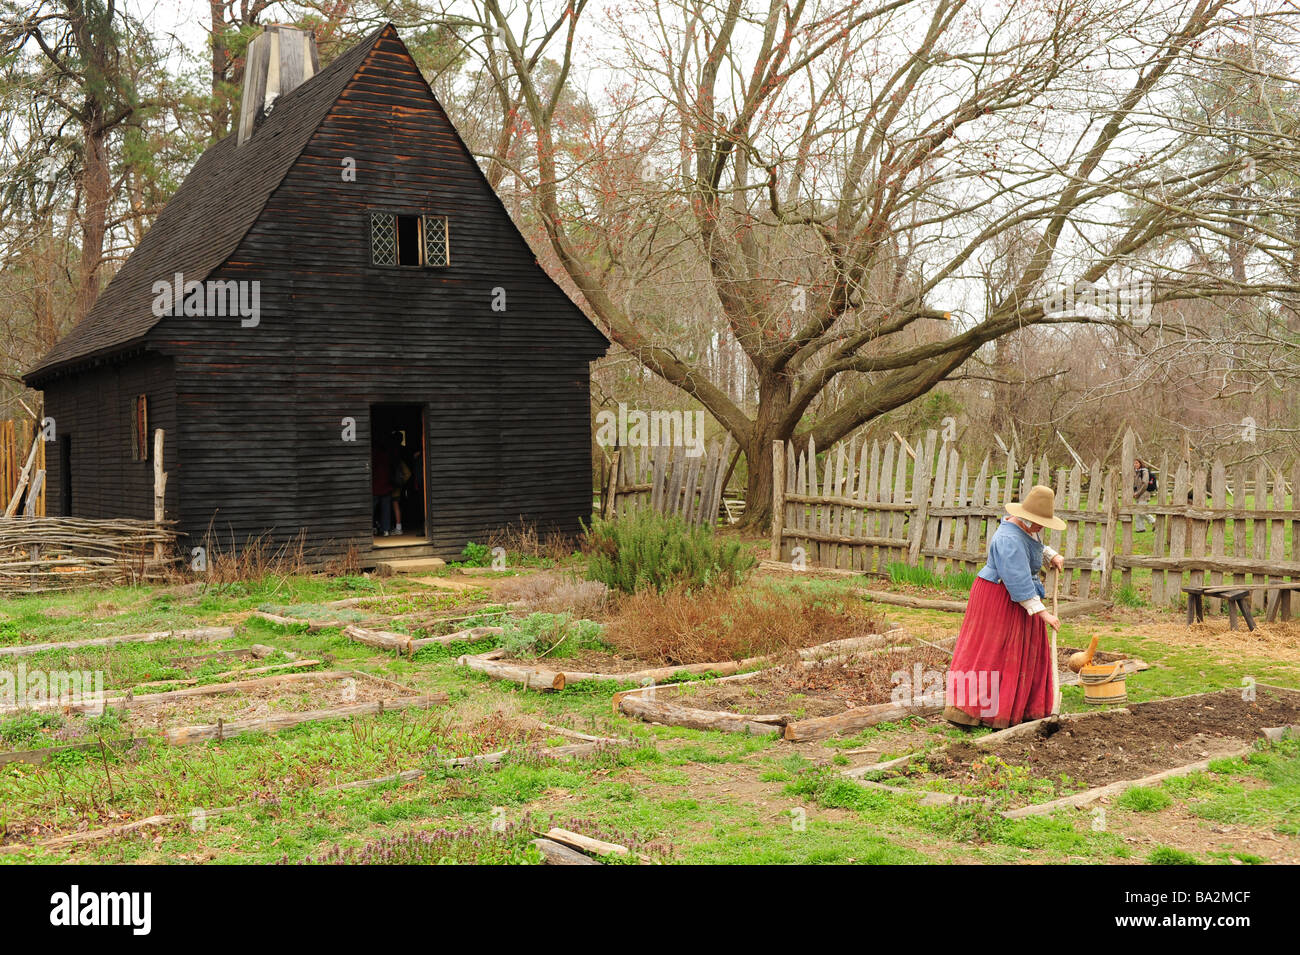 usa-maryland-historic-st-marys-city-md-first-capitol-colonial-village-BA2MCF.jpg